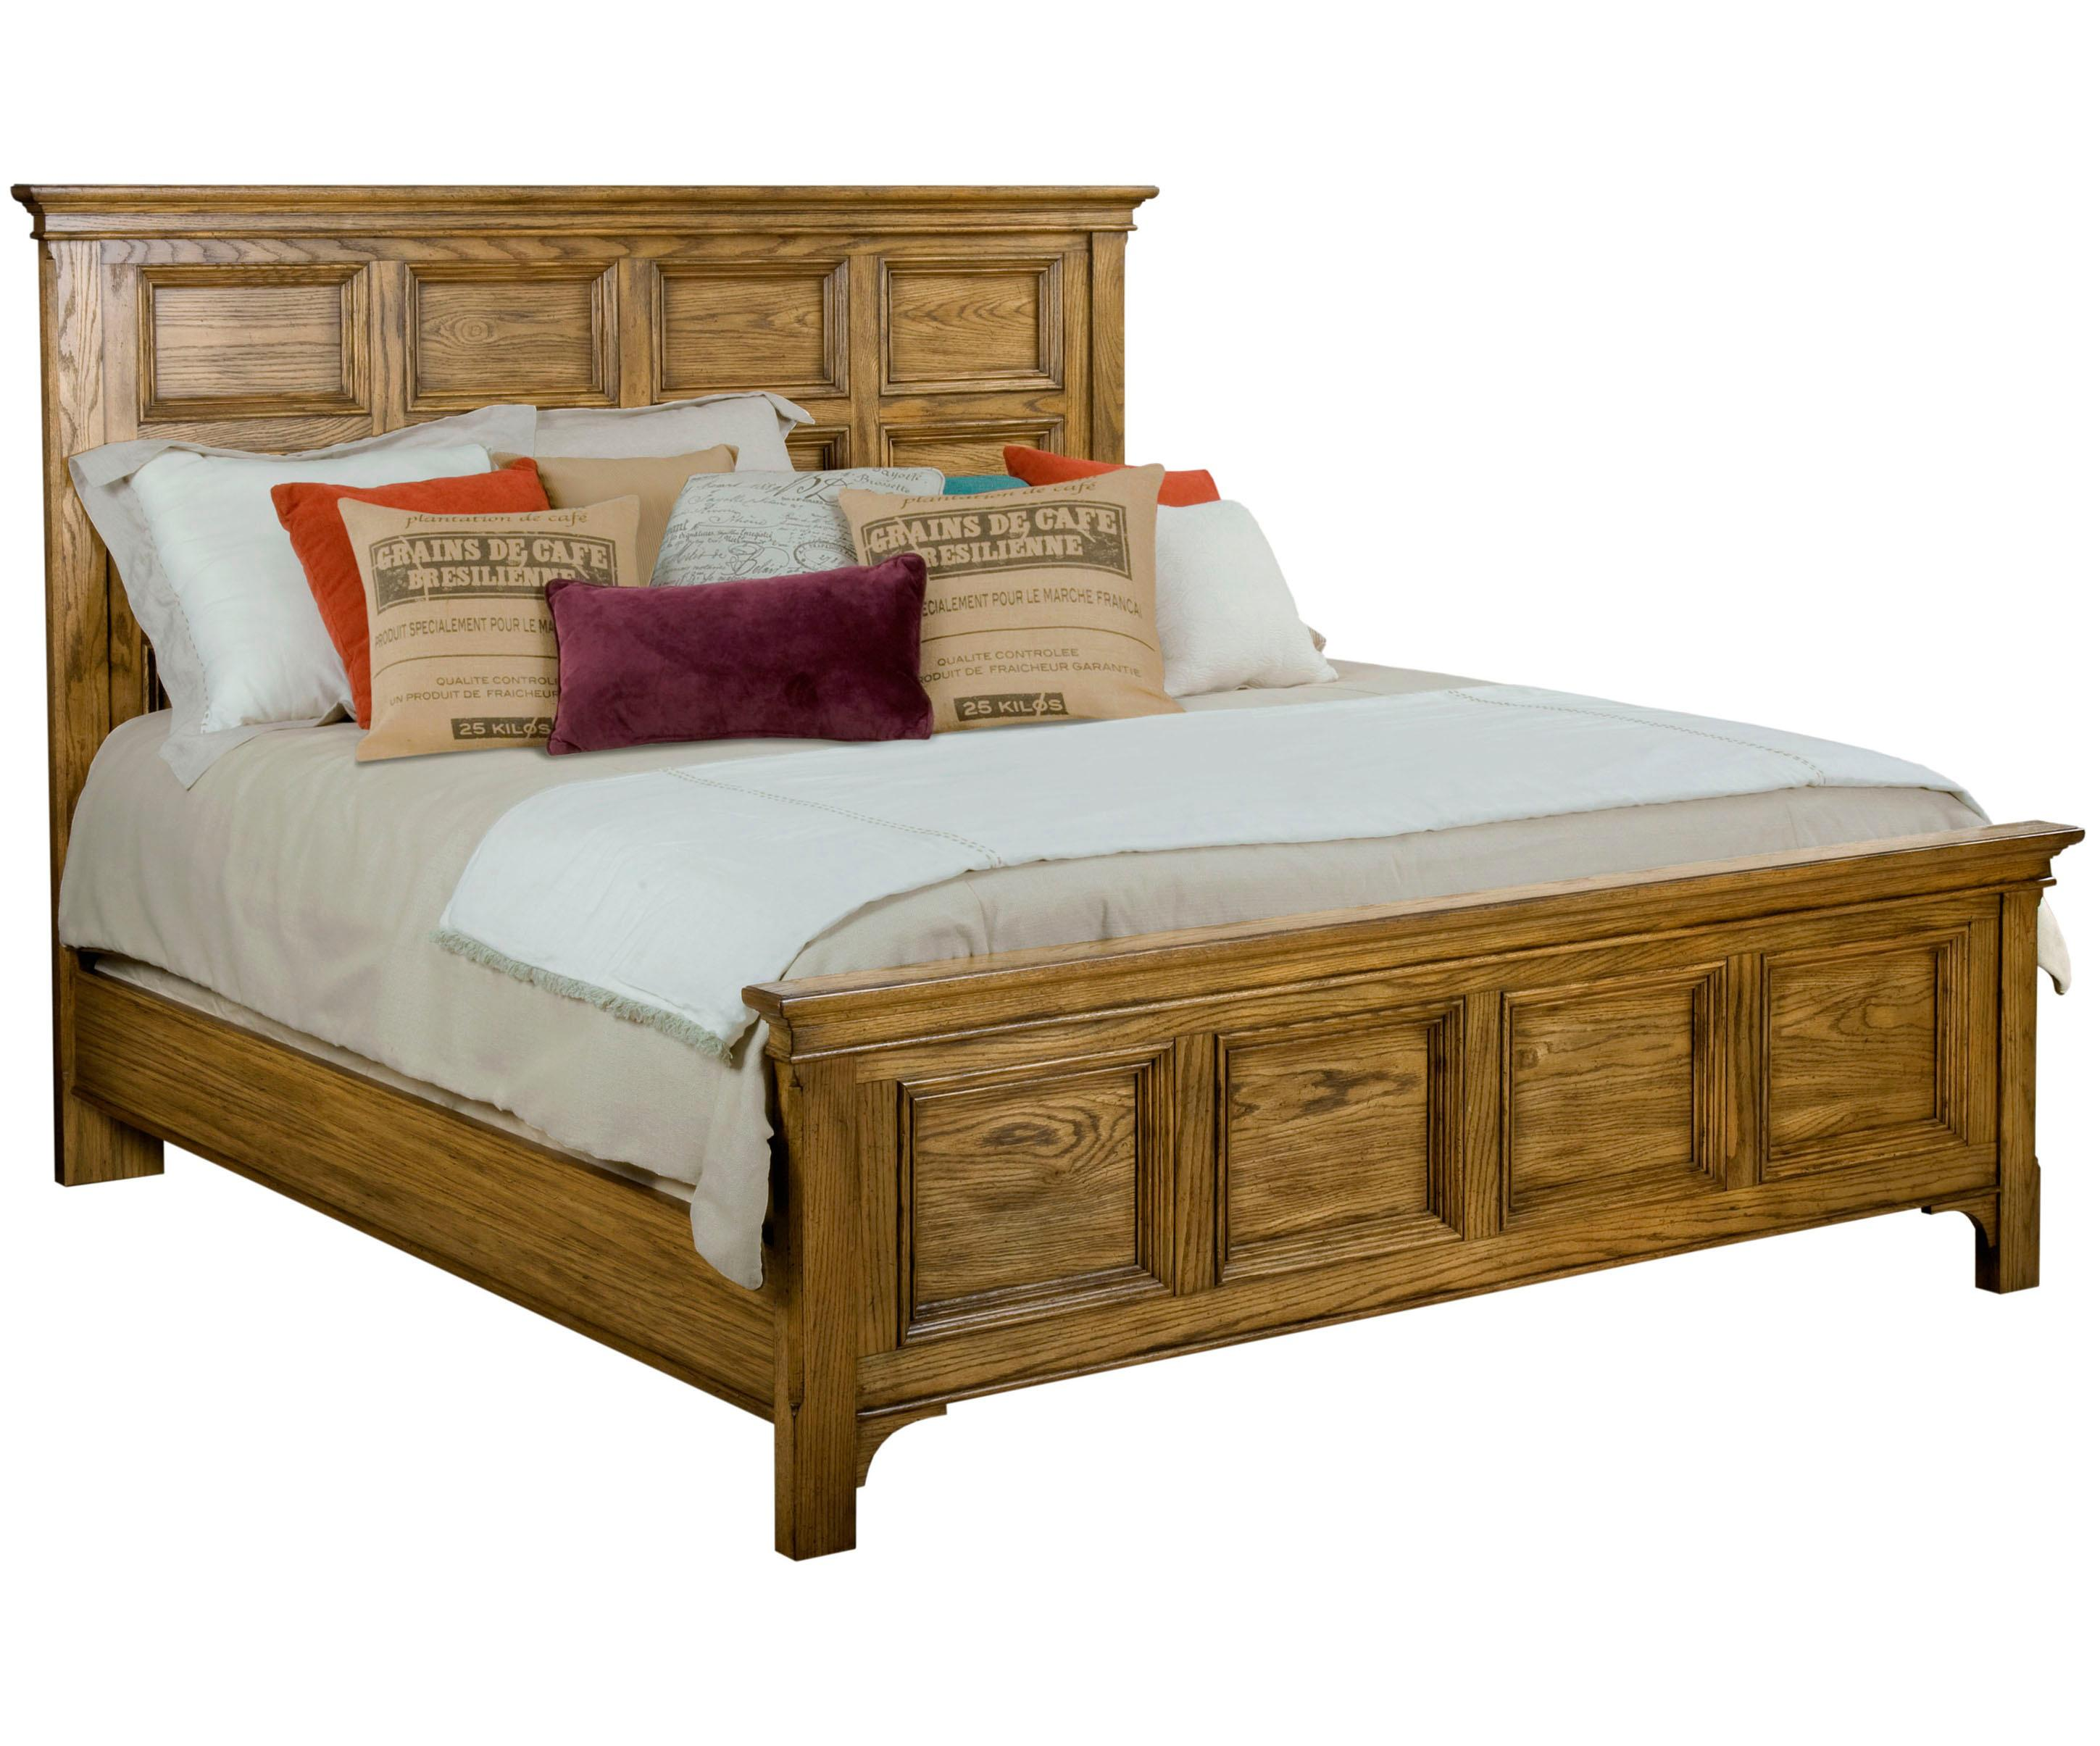 Broyhill Furniture New Vintage California King Panel Bed - Item Number: 4808-274+75+485